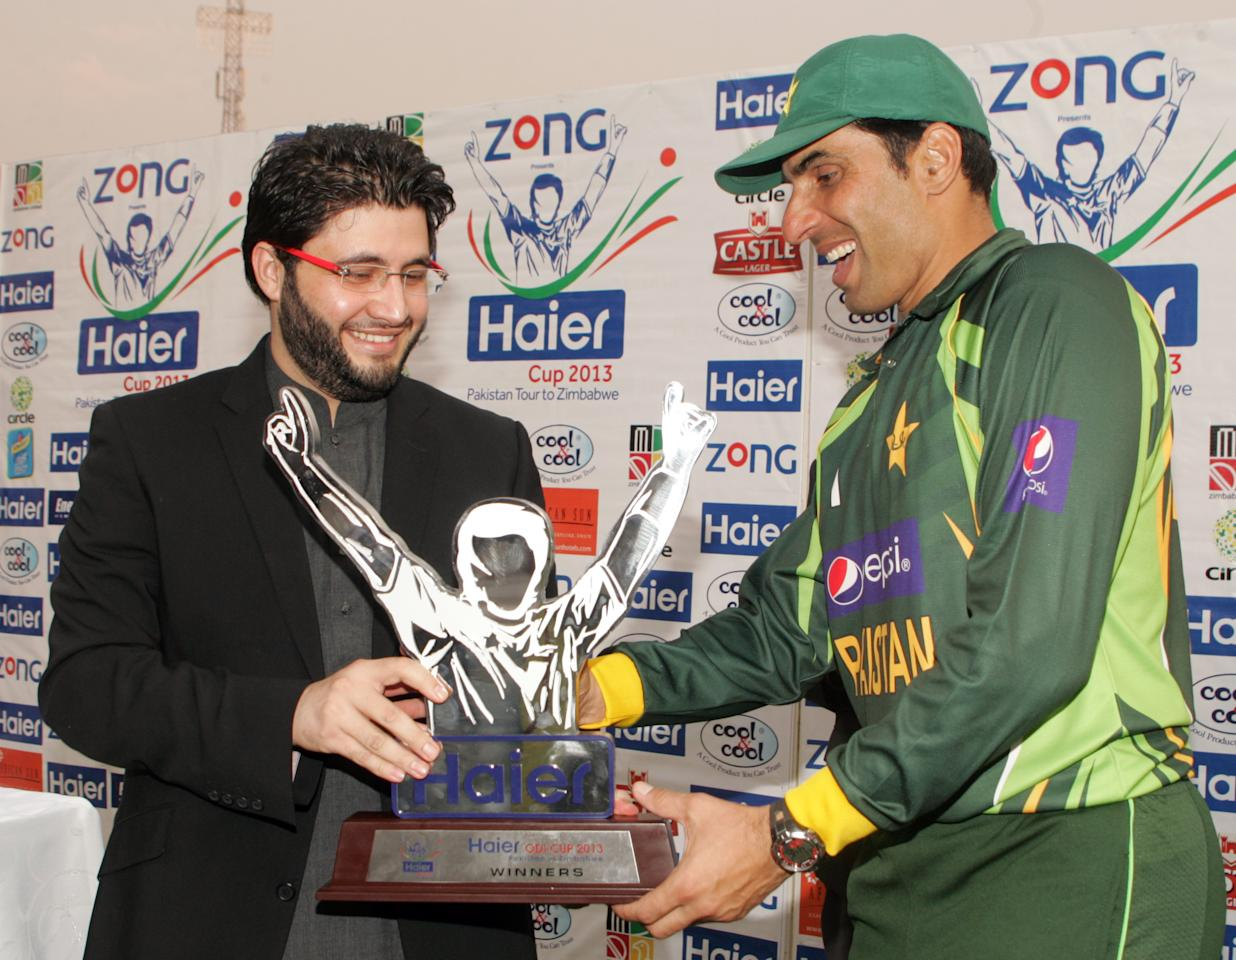 Pakistan's captain Misbah Ul Haq (R) receives the series trophy after winning the final game of the three ODI cricket series matches between Pakistan and Zimbabwe at the Harare Sports Club August 31, 2013.      AFP PHOTO / JEKESAI NJIKIZANA        (Photo credit should read JEKESAI NJIKIZANA/AFP/Getty Images)